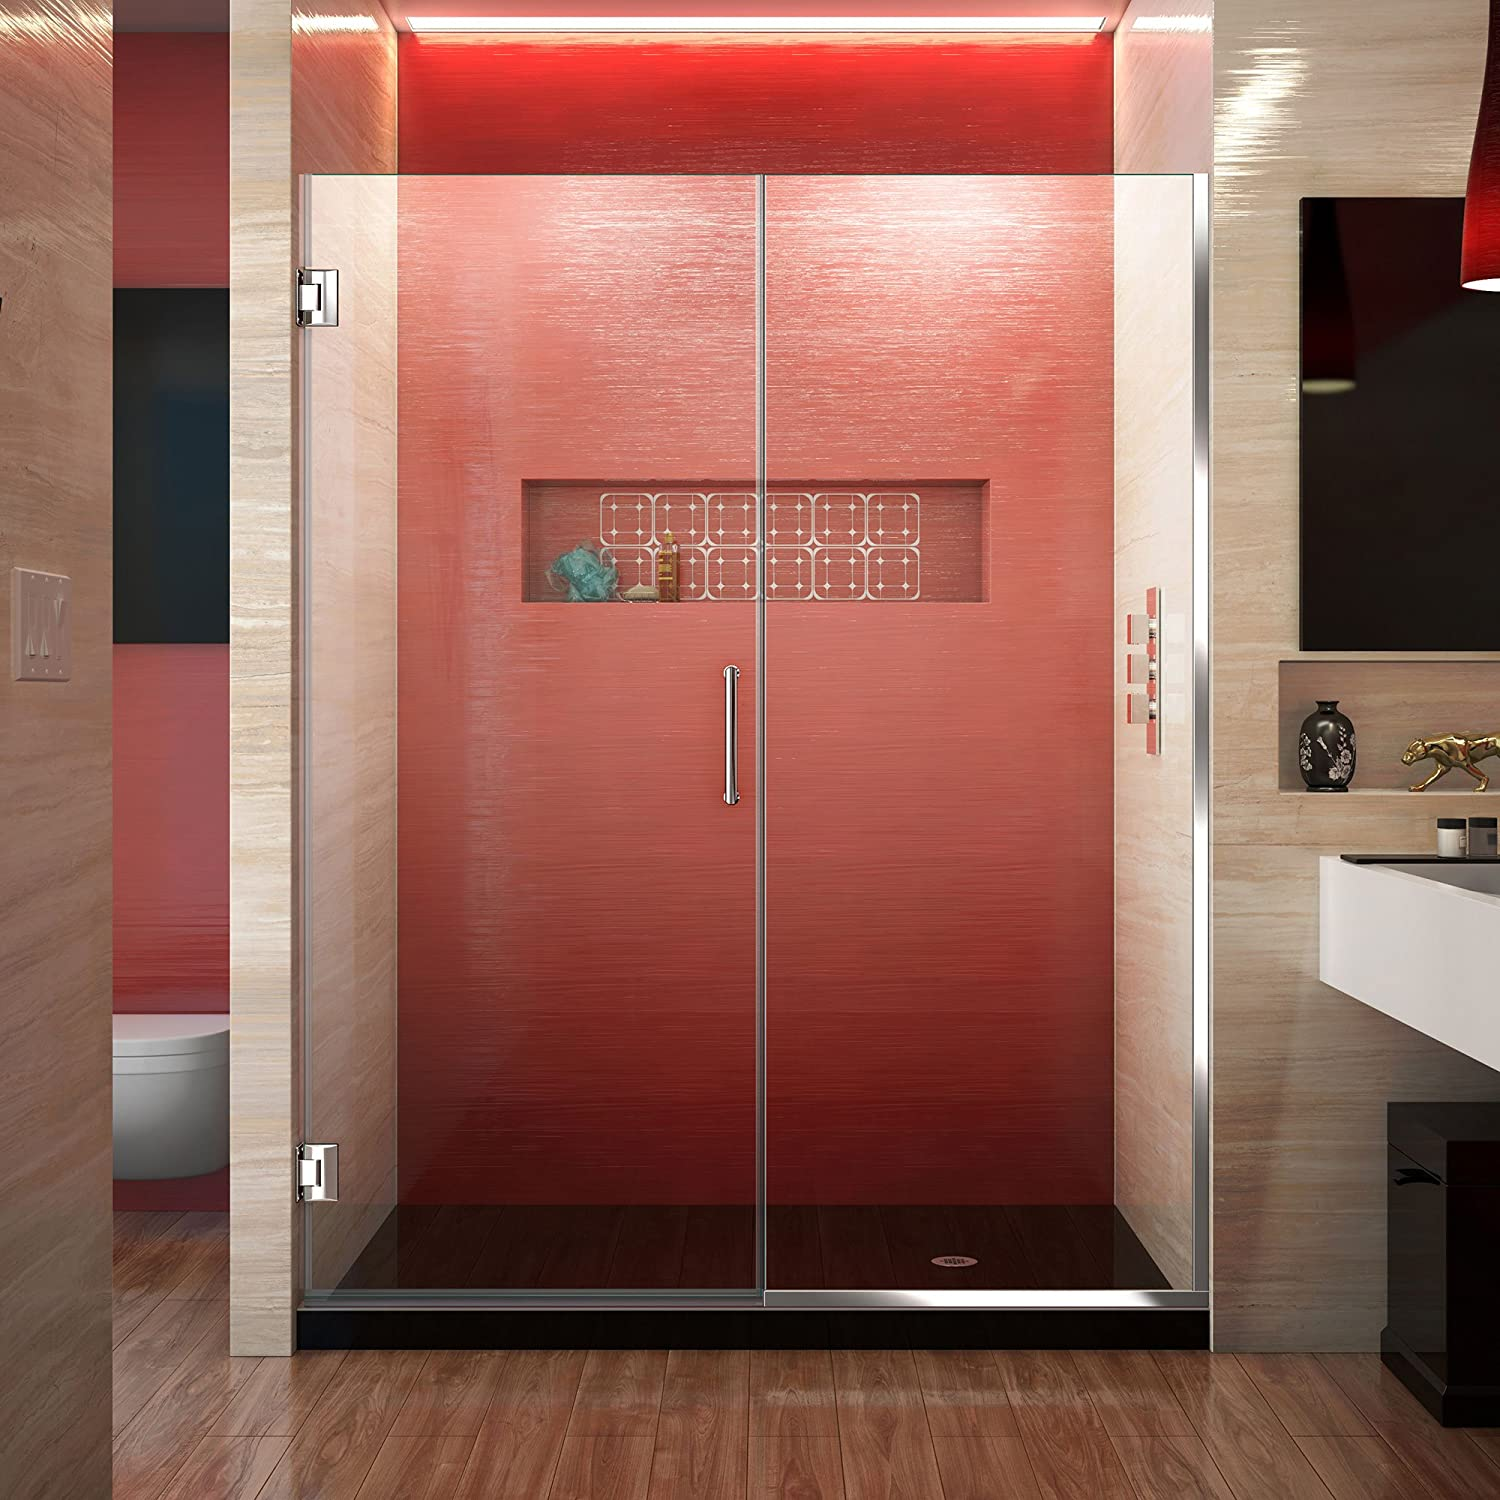 DreamLine Unidoor Plus 55 1 2-56 in. W x 72 in. H Frameless Hinged Shower Door, Clear Glass, Chrome, SHDR-245557210-01